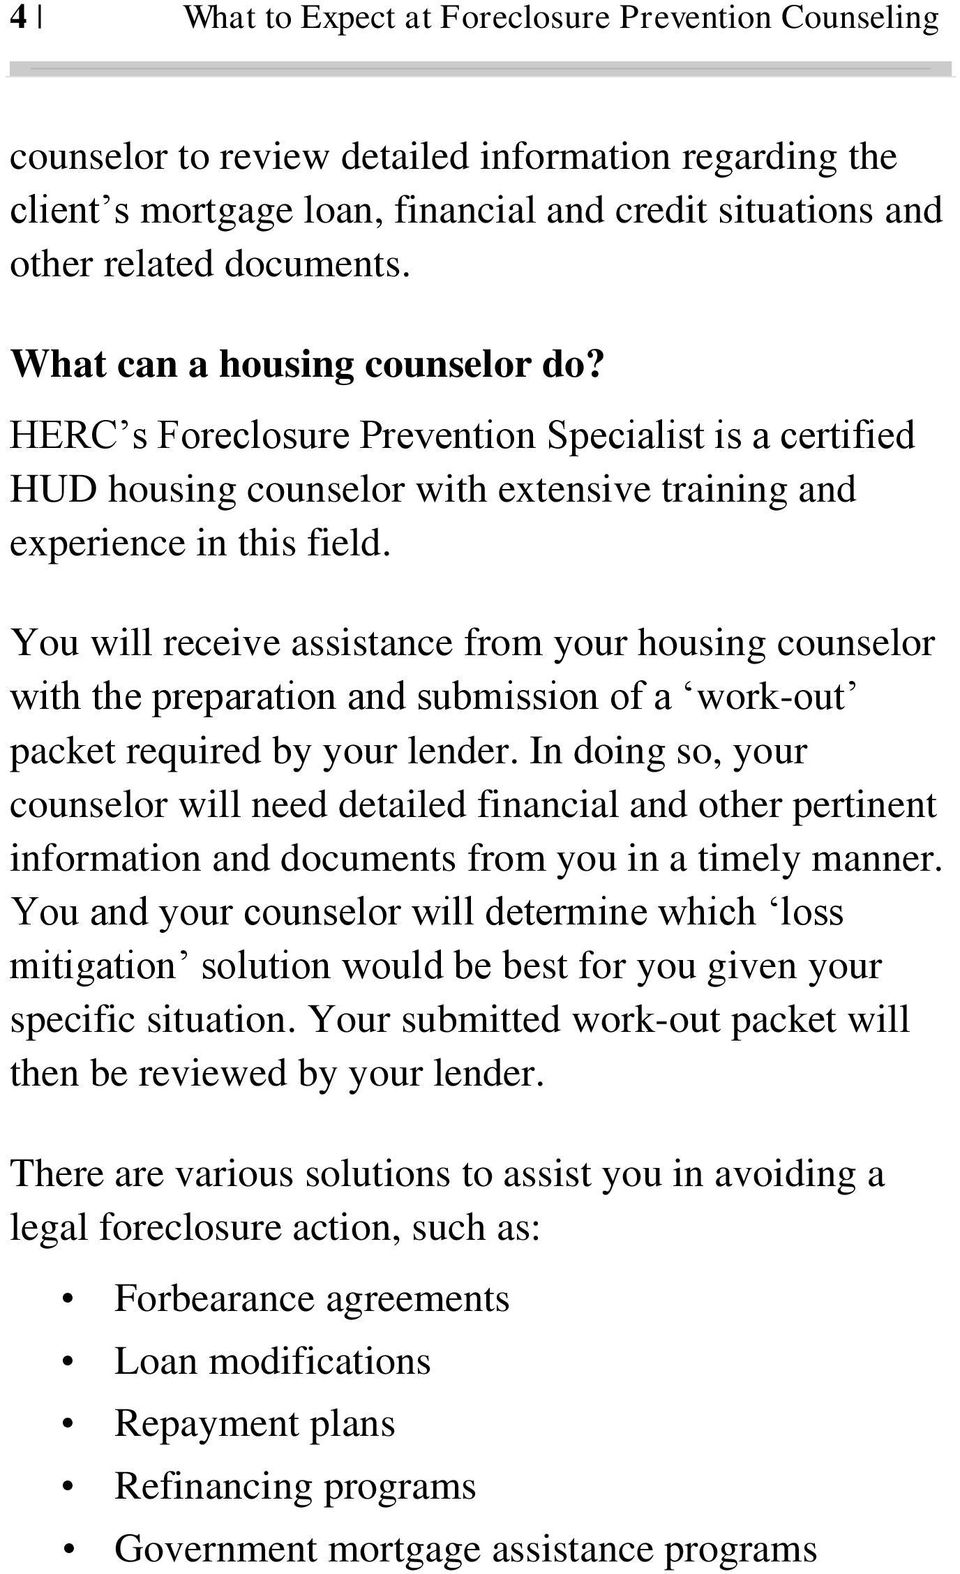 You will receive assistance from your housing counselor with the preparation and submission of a work-out packet required by your lender.